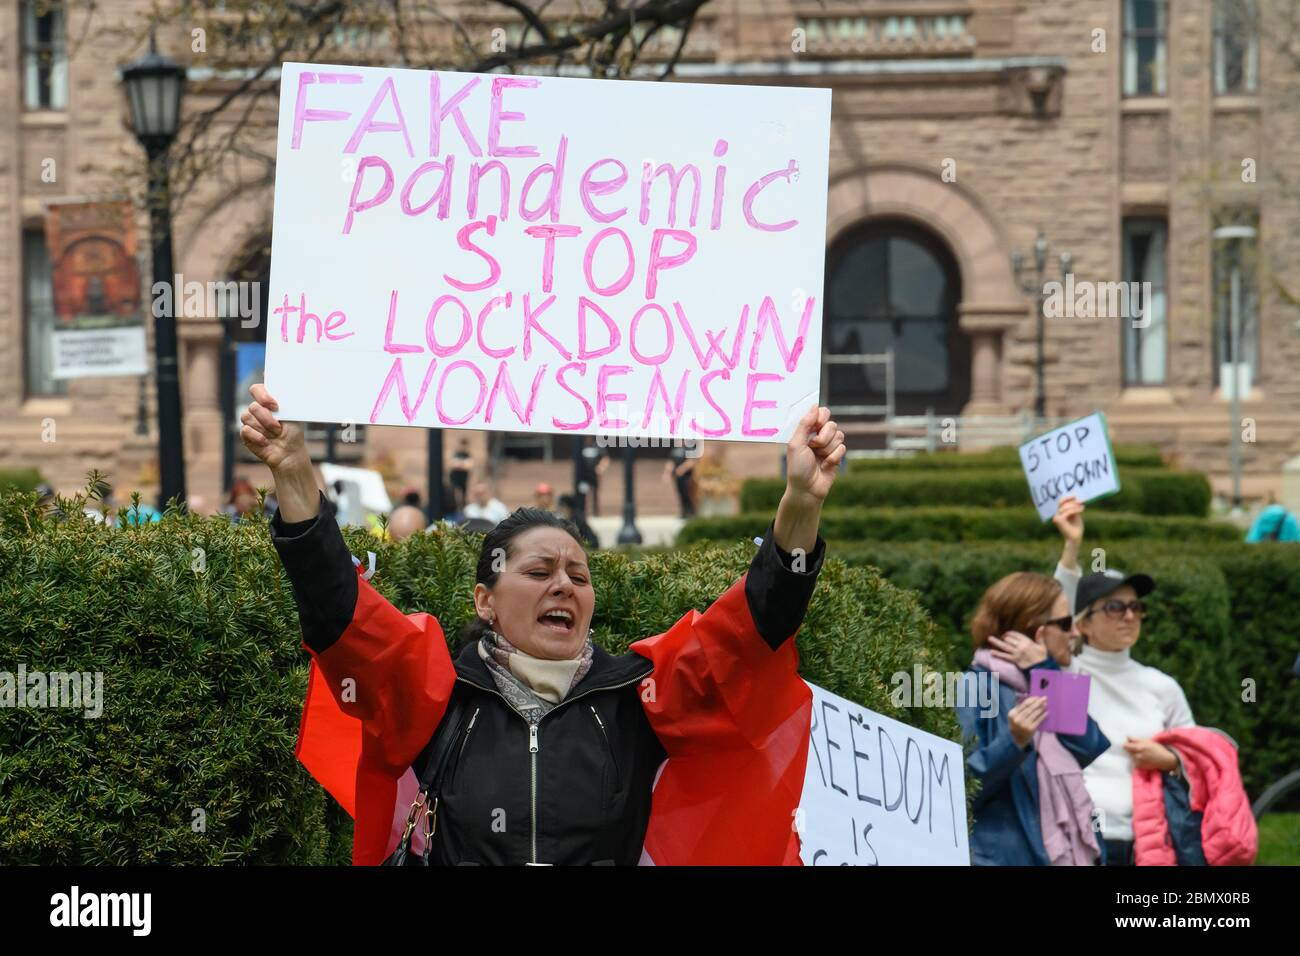 A protester calls for an end to the COVID-19 shutdown outside of the Ontario Legislative Building at Queen's Park, Toronto ON on May 2, 2020. Stock Photo